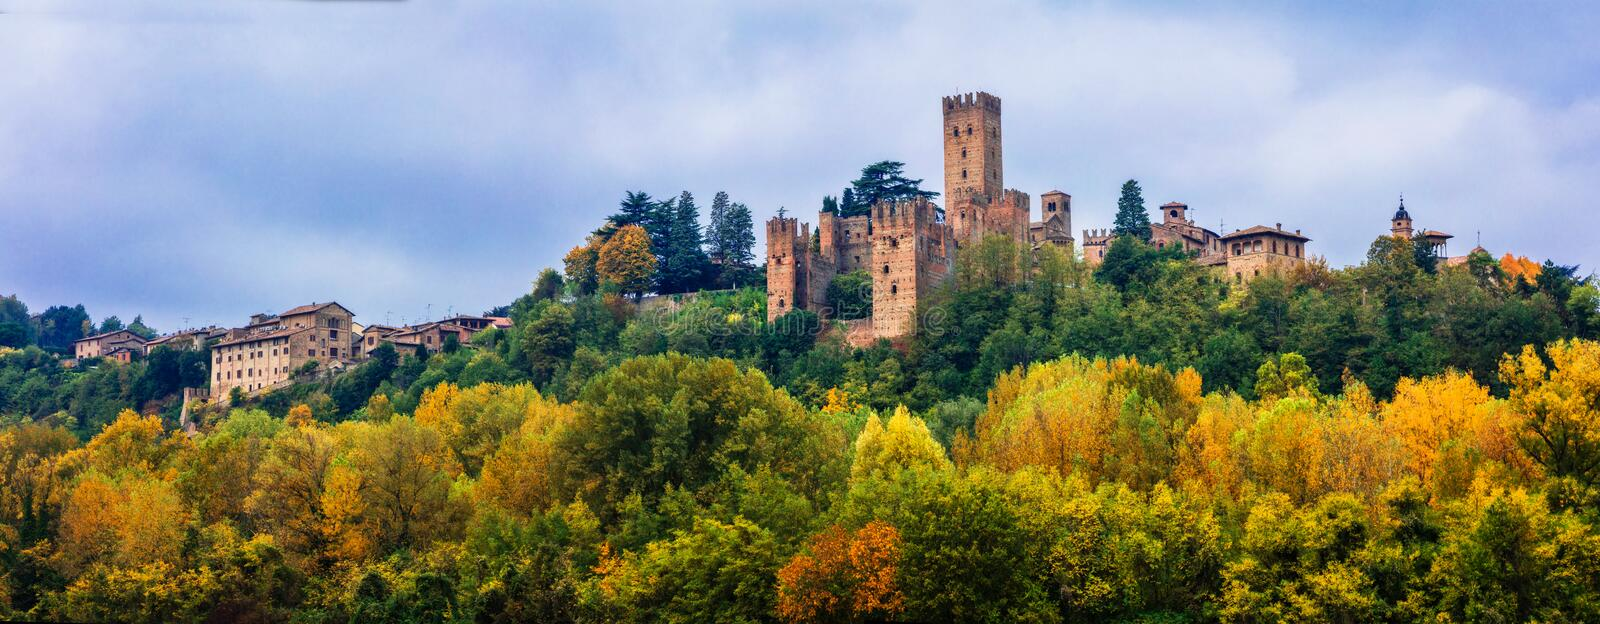 Medieval towns and castles of Italy - Castell` Arquato in Emilia-. Impressive Castell` Arquato village,panoramic view,near Piacenza,Italy royalty free stock photography